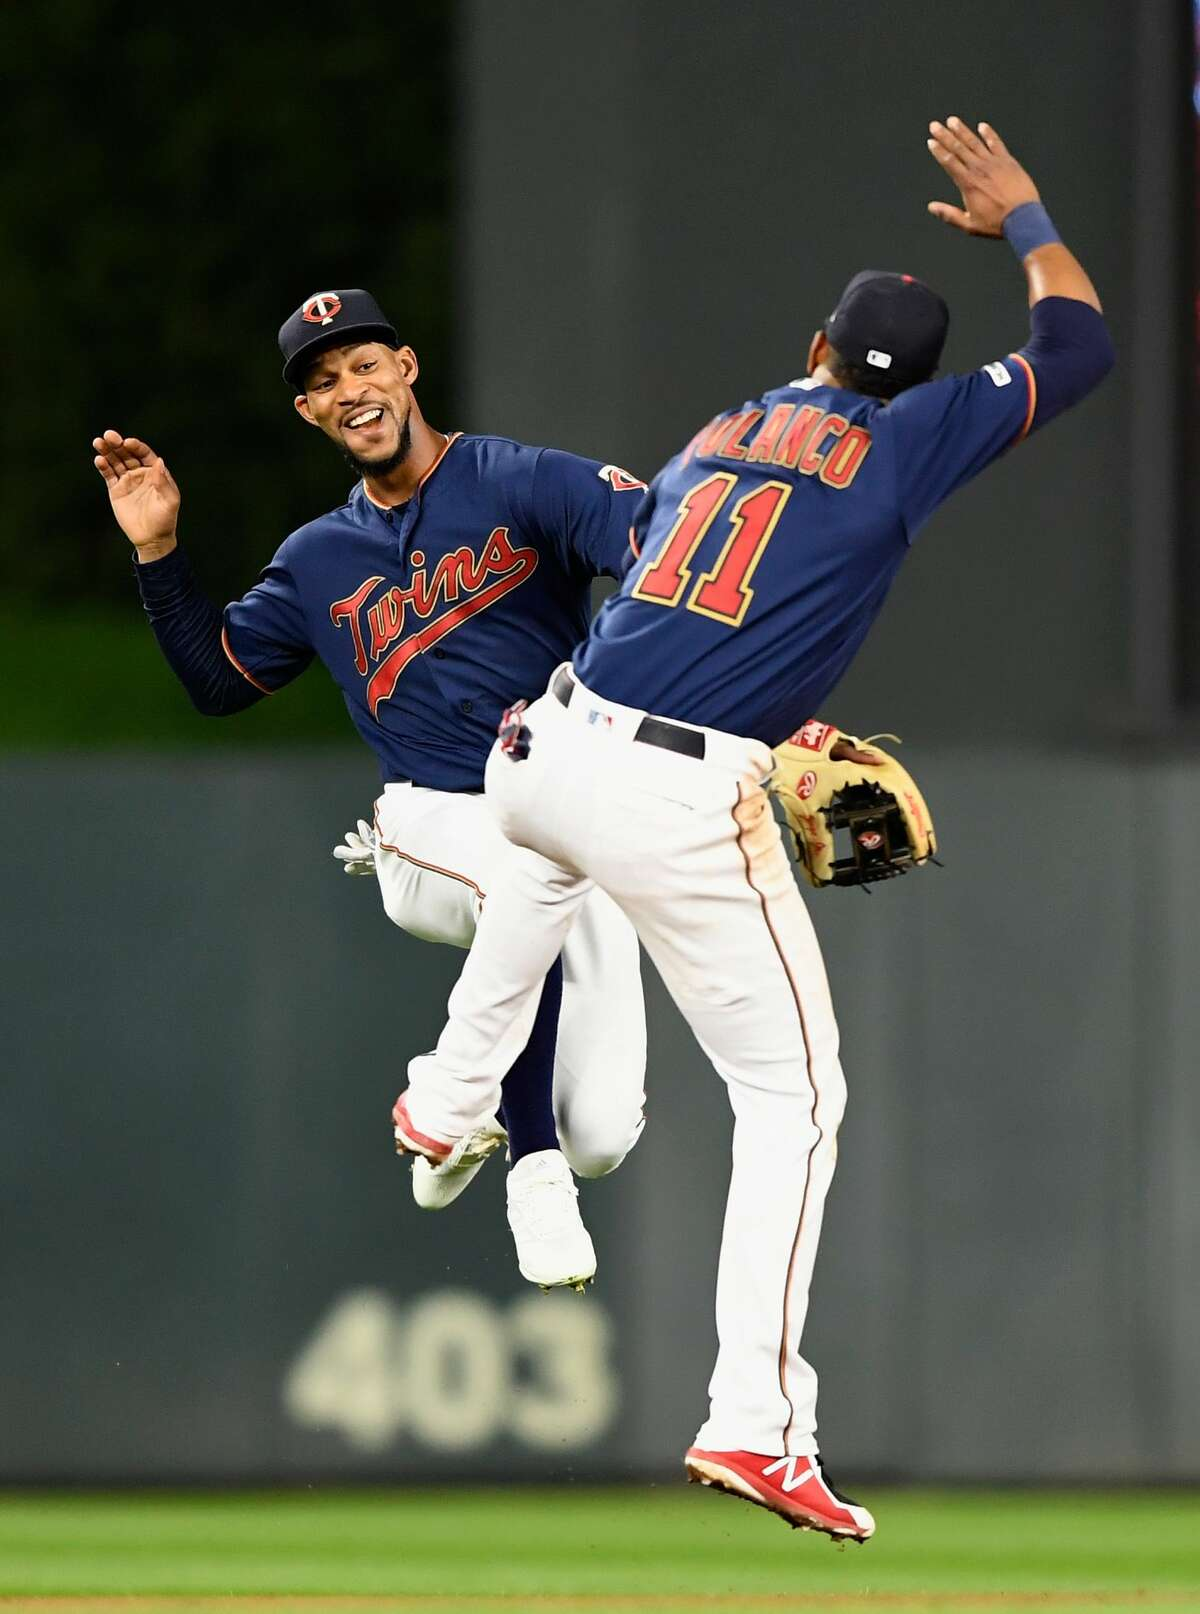 MINNEAPOLIS, MN - APRIL 29: Byron Buxton #25 and Jorge Polanco #11 of the Minnesota Twins celebrate defeating the Houston Astros after the game on April 29, 2019 at Target Field in Minneapolis, Minnesota. The Twins defeated the Astros 1-0. (Photo by Hannah Foslien/Getty Images)